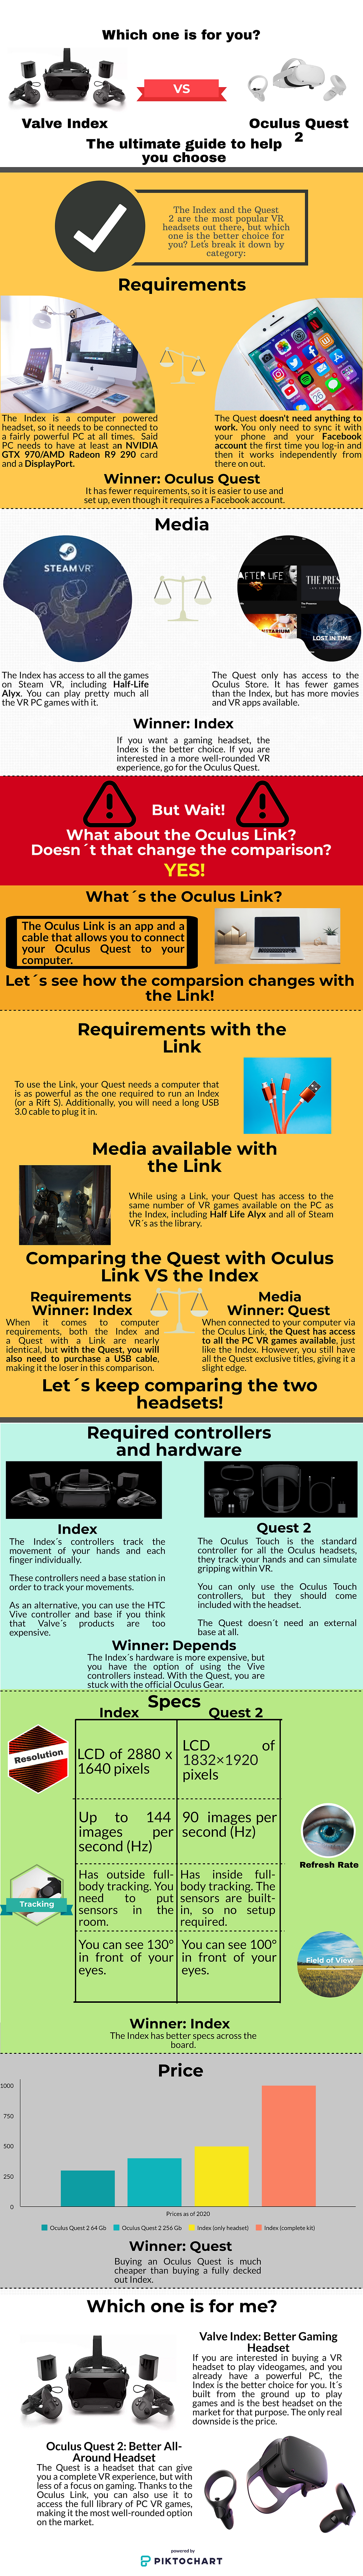 An Infographic comparing the Oculus Quest 2 and Valve Index VR headsets. It measures their games, requirements, price, and specs.